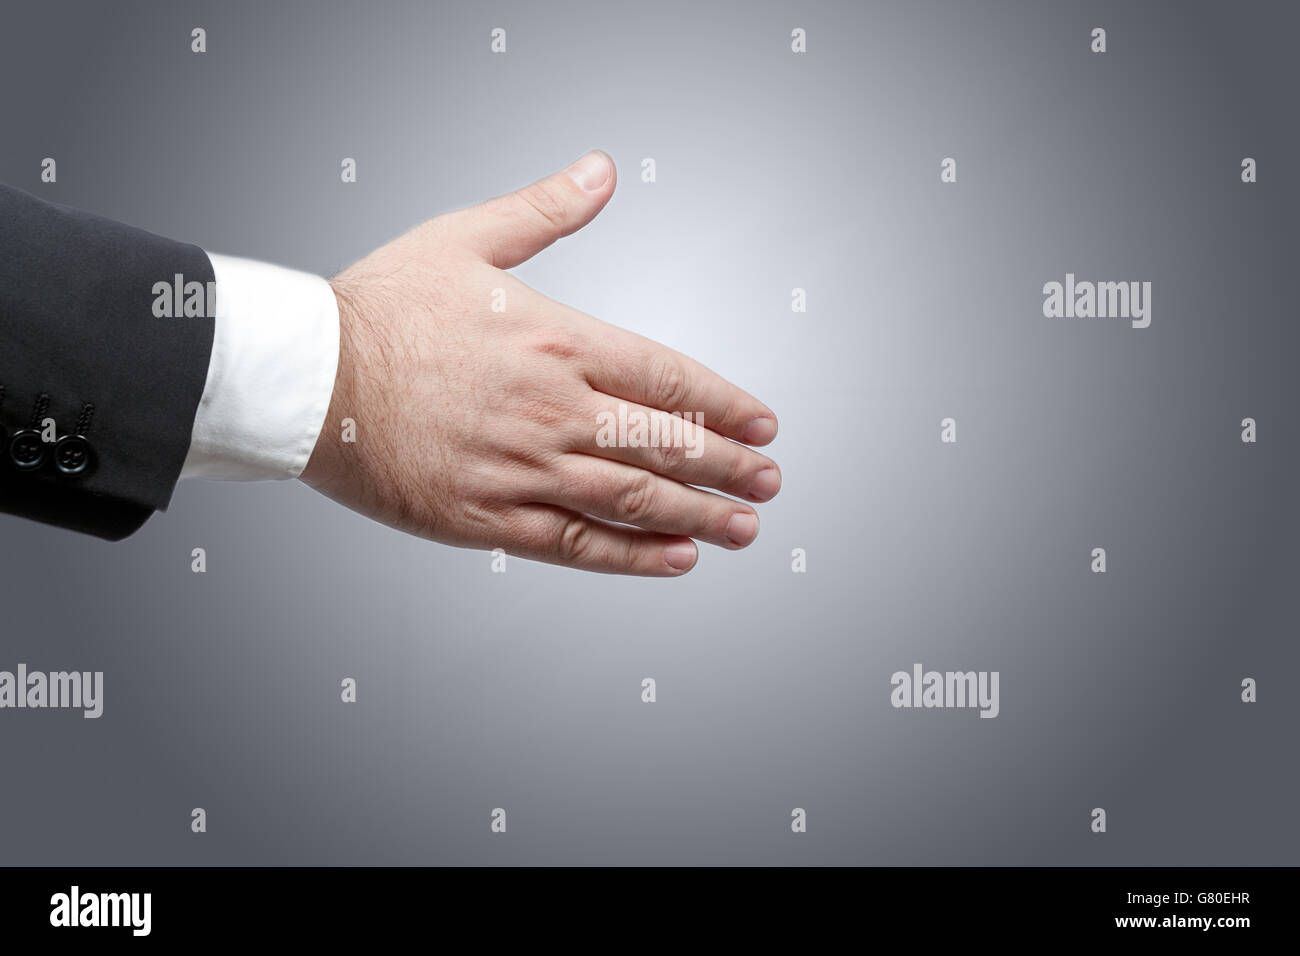 Business man right hand ready to shake another hand sealing a contract - Stock Image